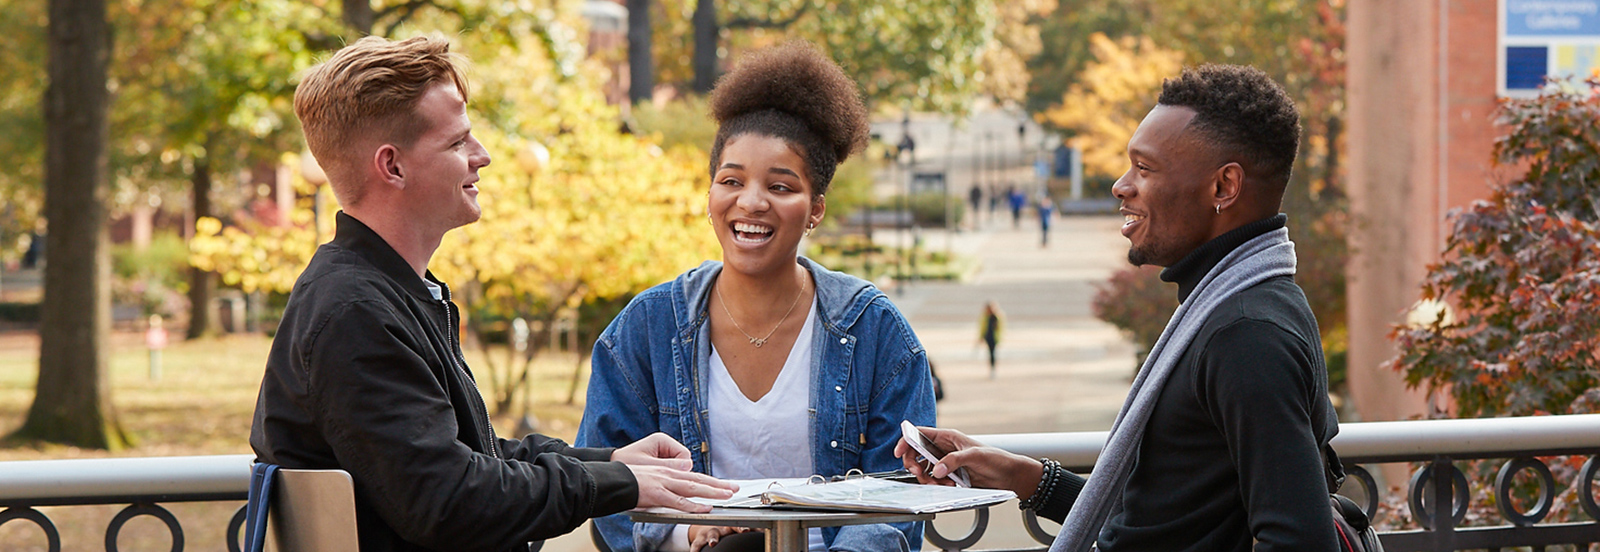 Students on campus enjoying conversion